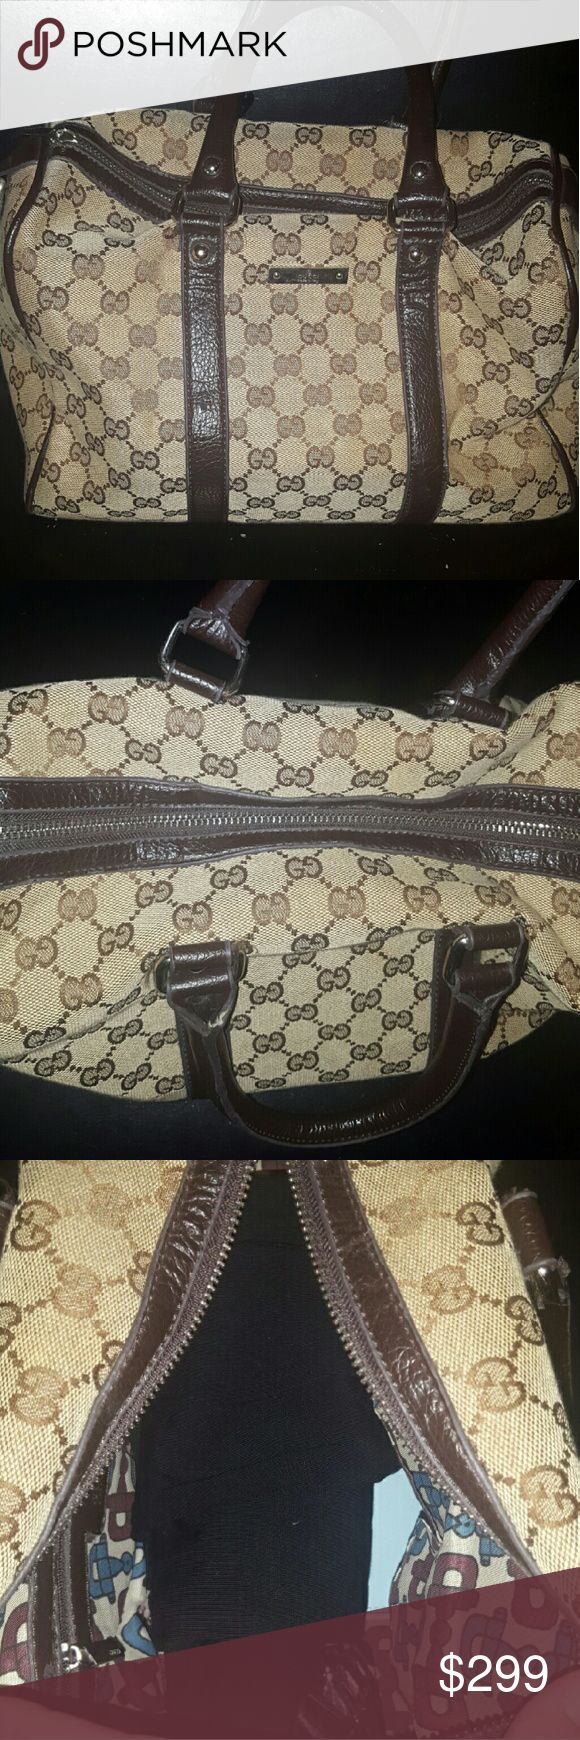 Gorgeous bag One of my faves I really am not sure I want to let this go, maybe for the right offer its in euc | price reflects and is neogotiable. please do not purchase without letting me know first, order may be cancelled otherwise 💕 Gucci Bags